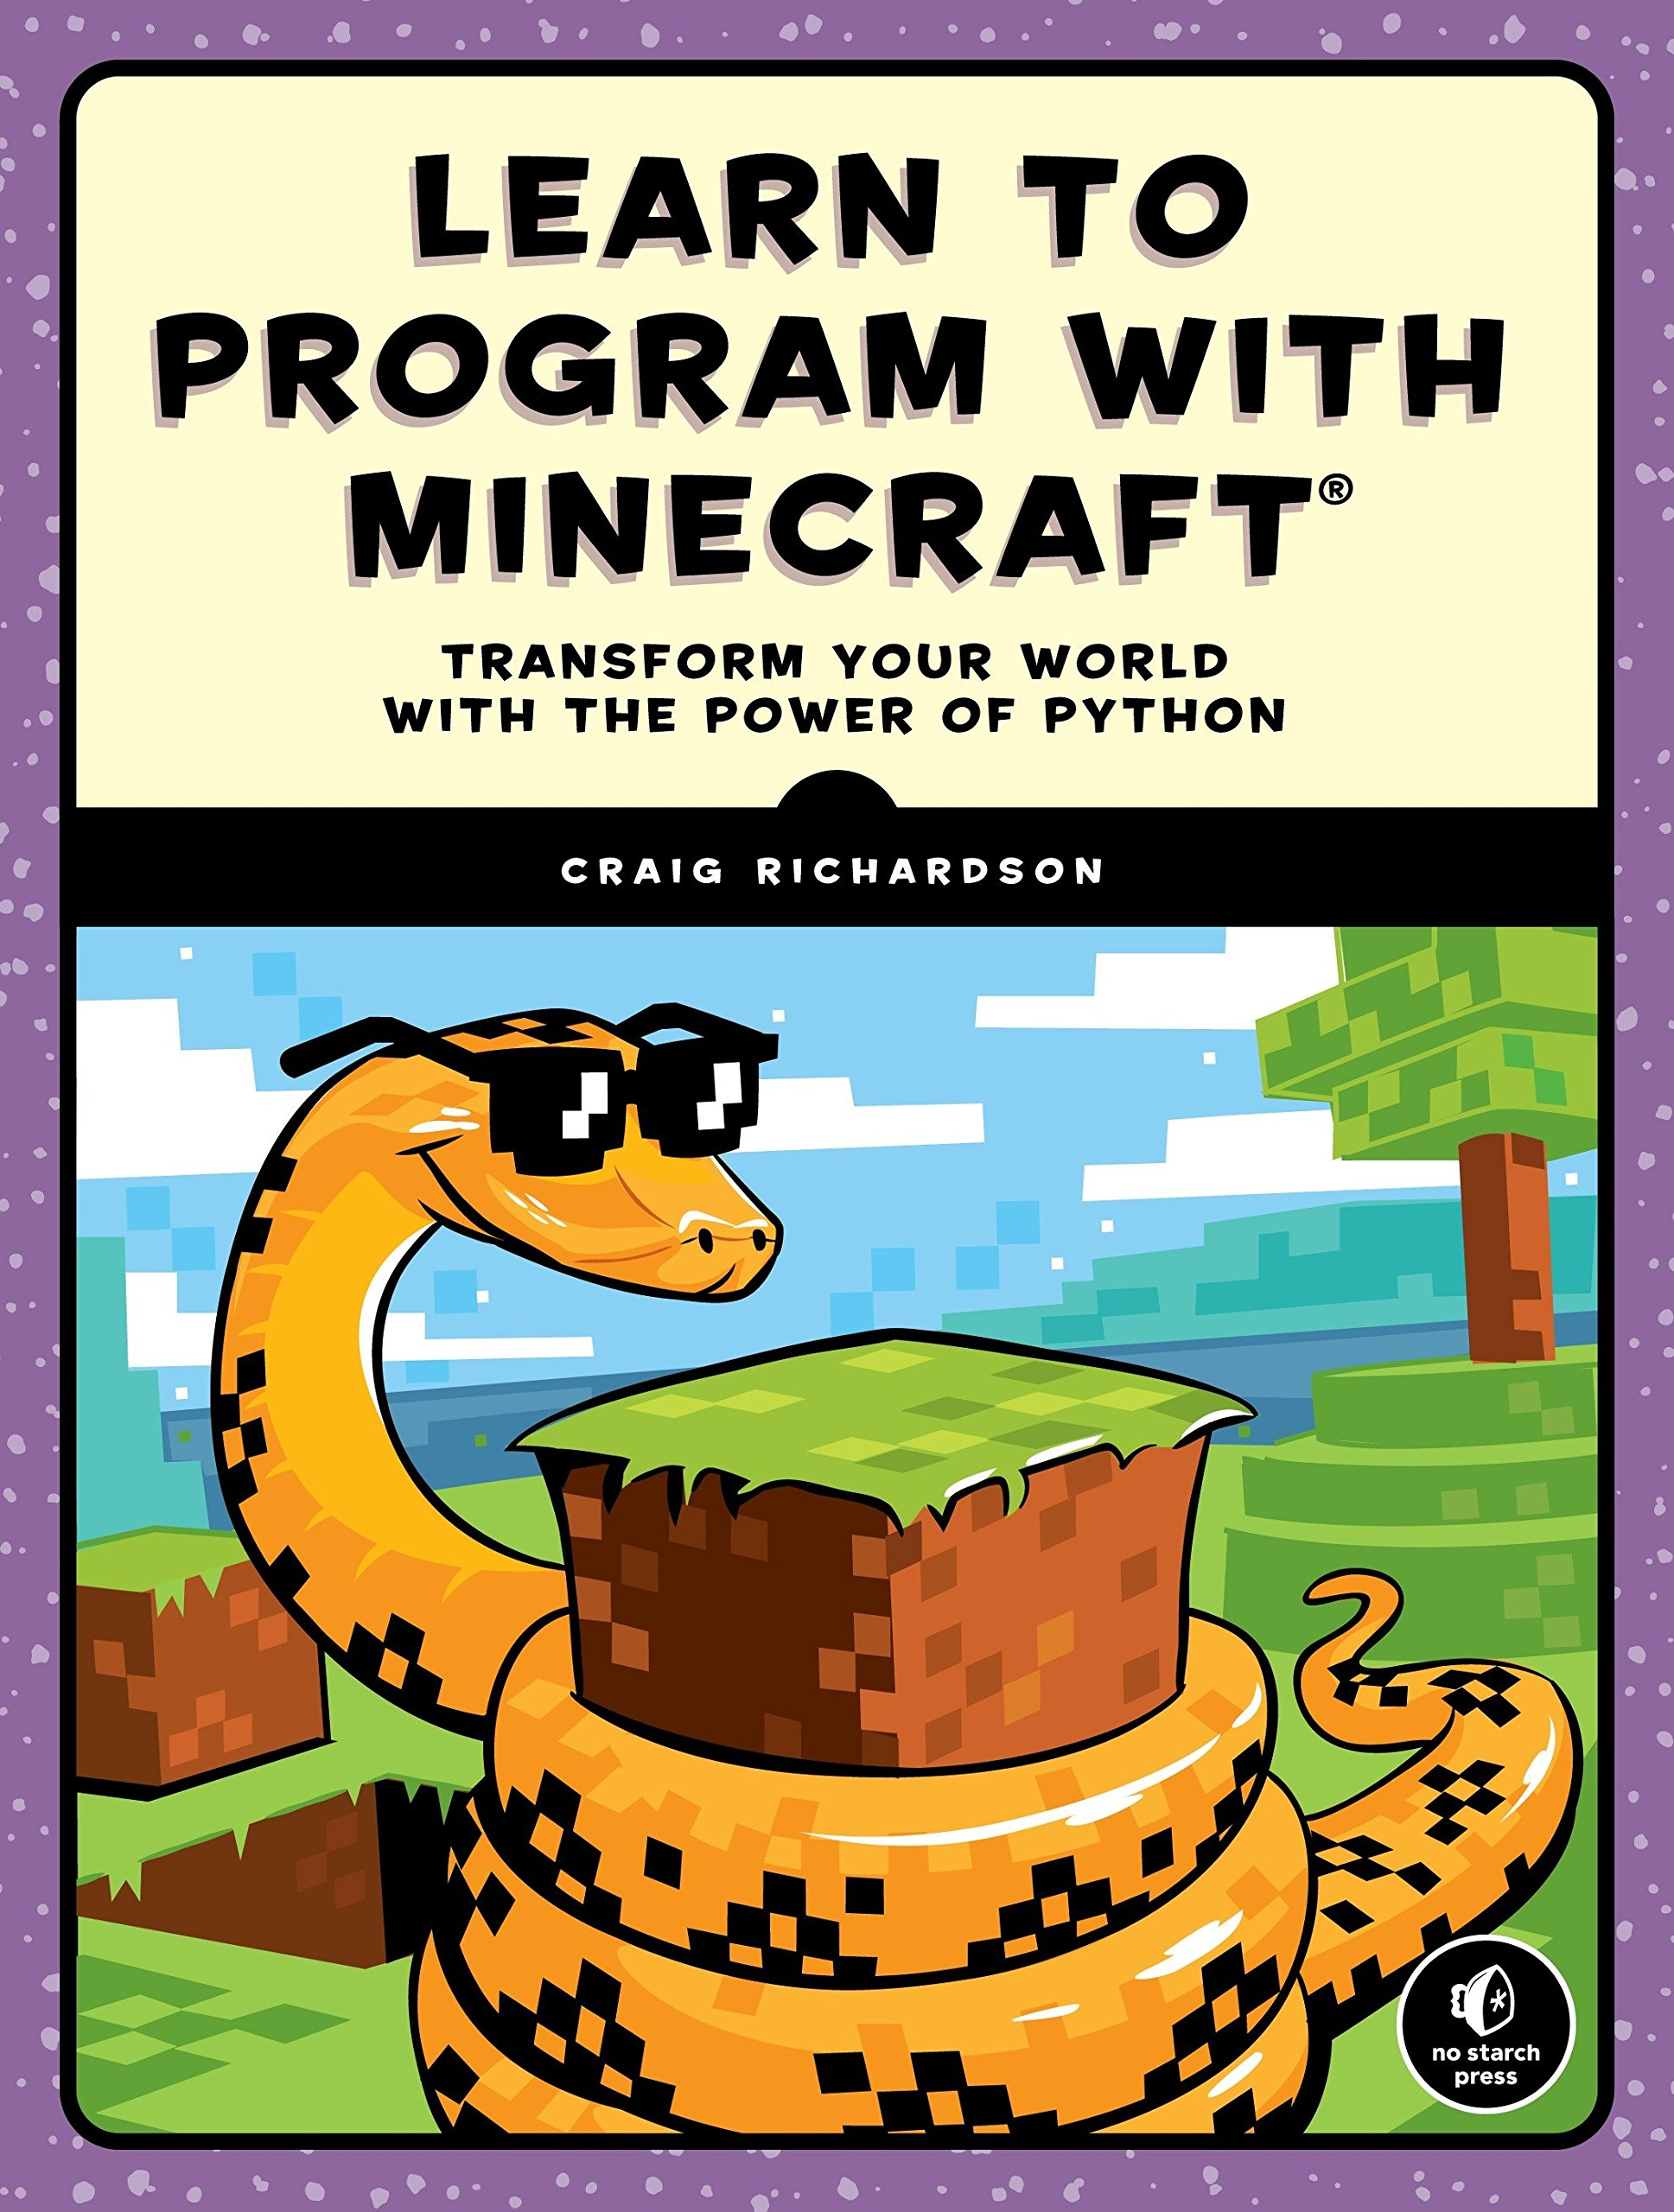 Learn to Program with Minecraft: Transform Your World with the Power of Python by Penguin Books